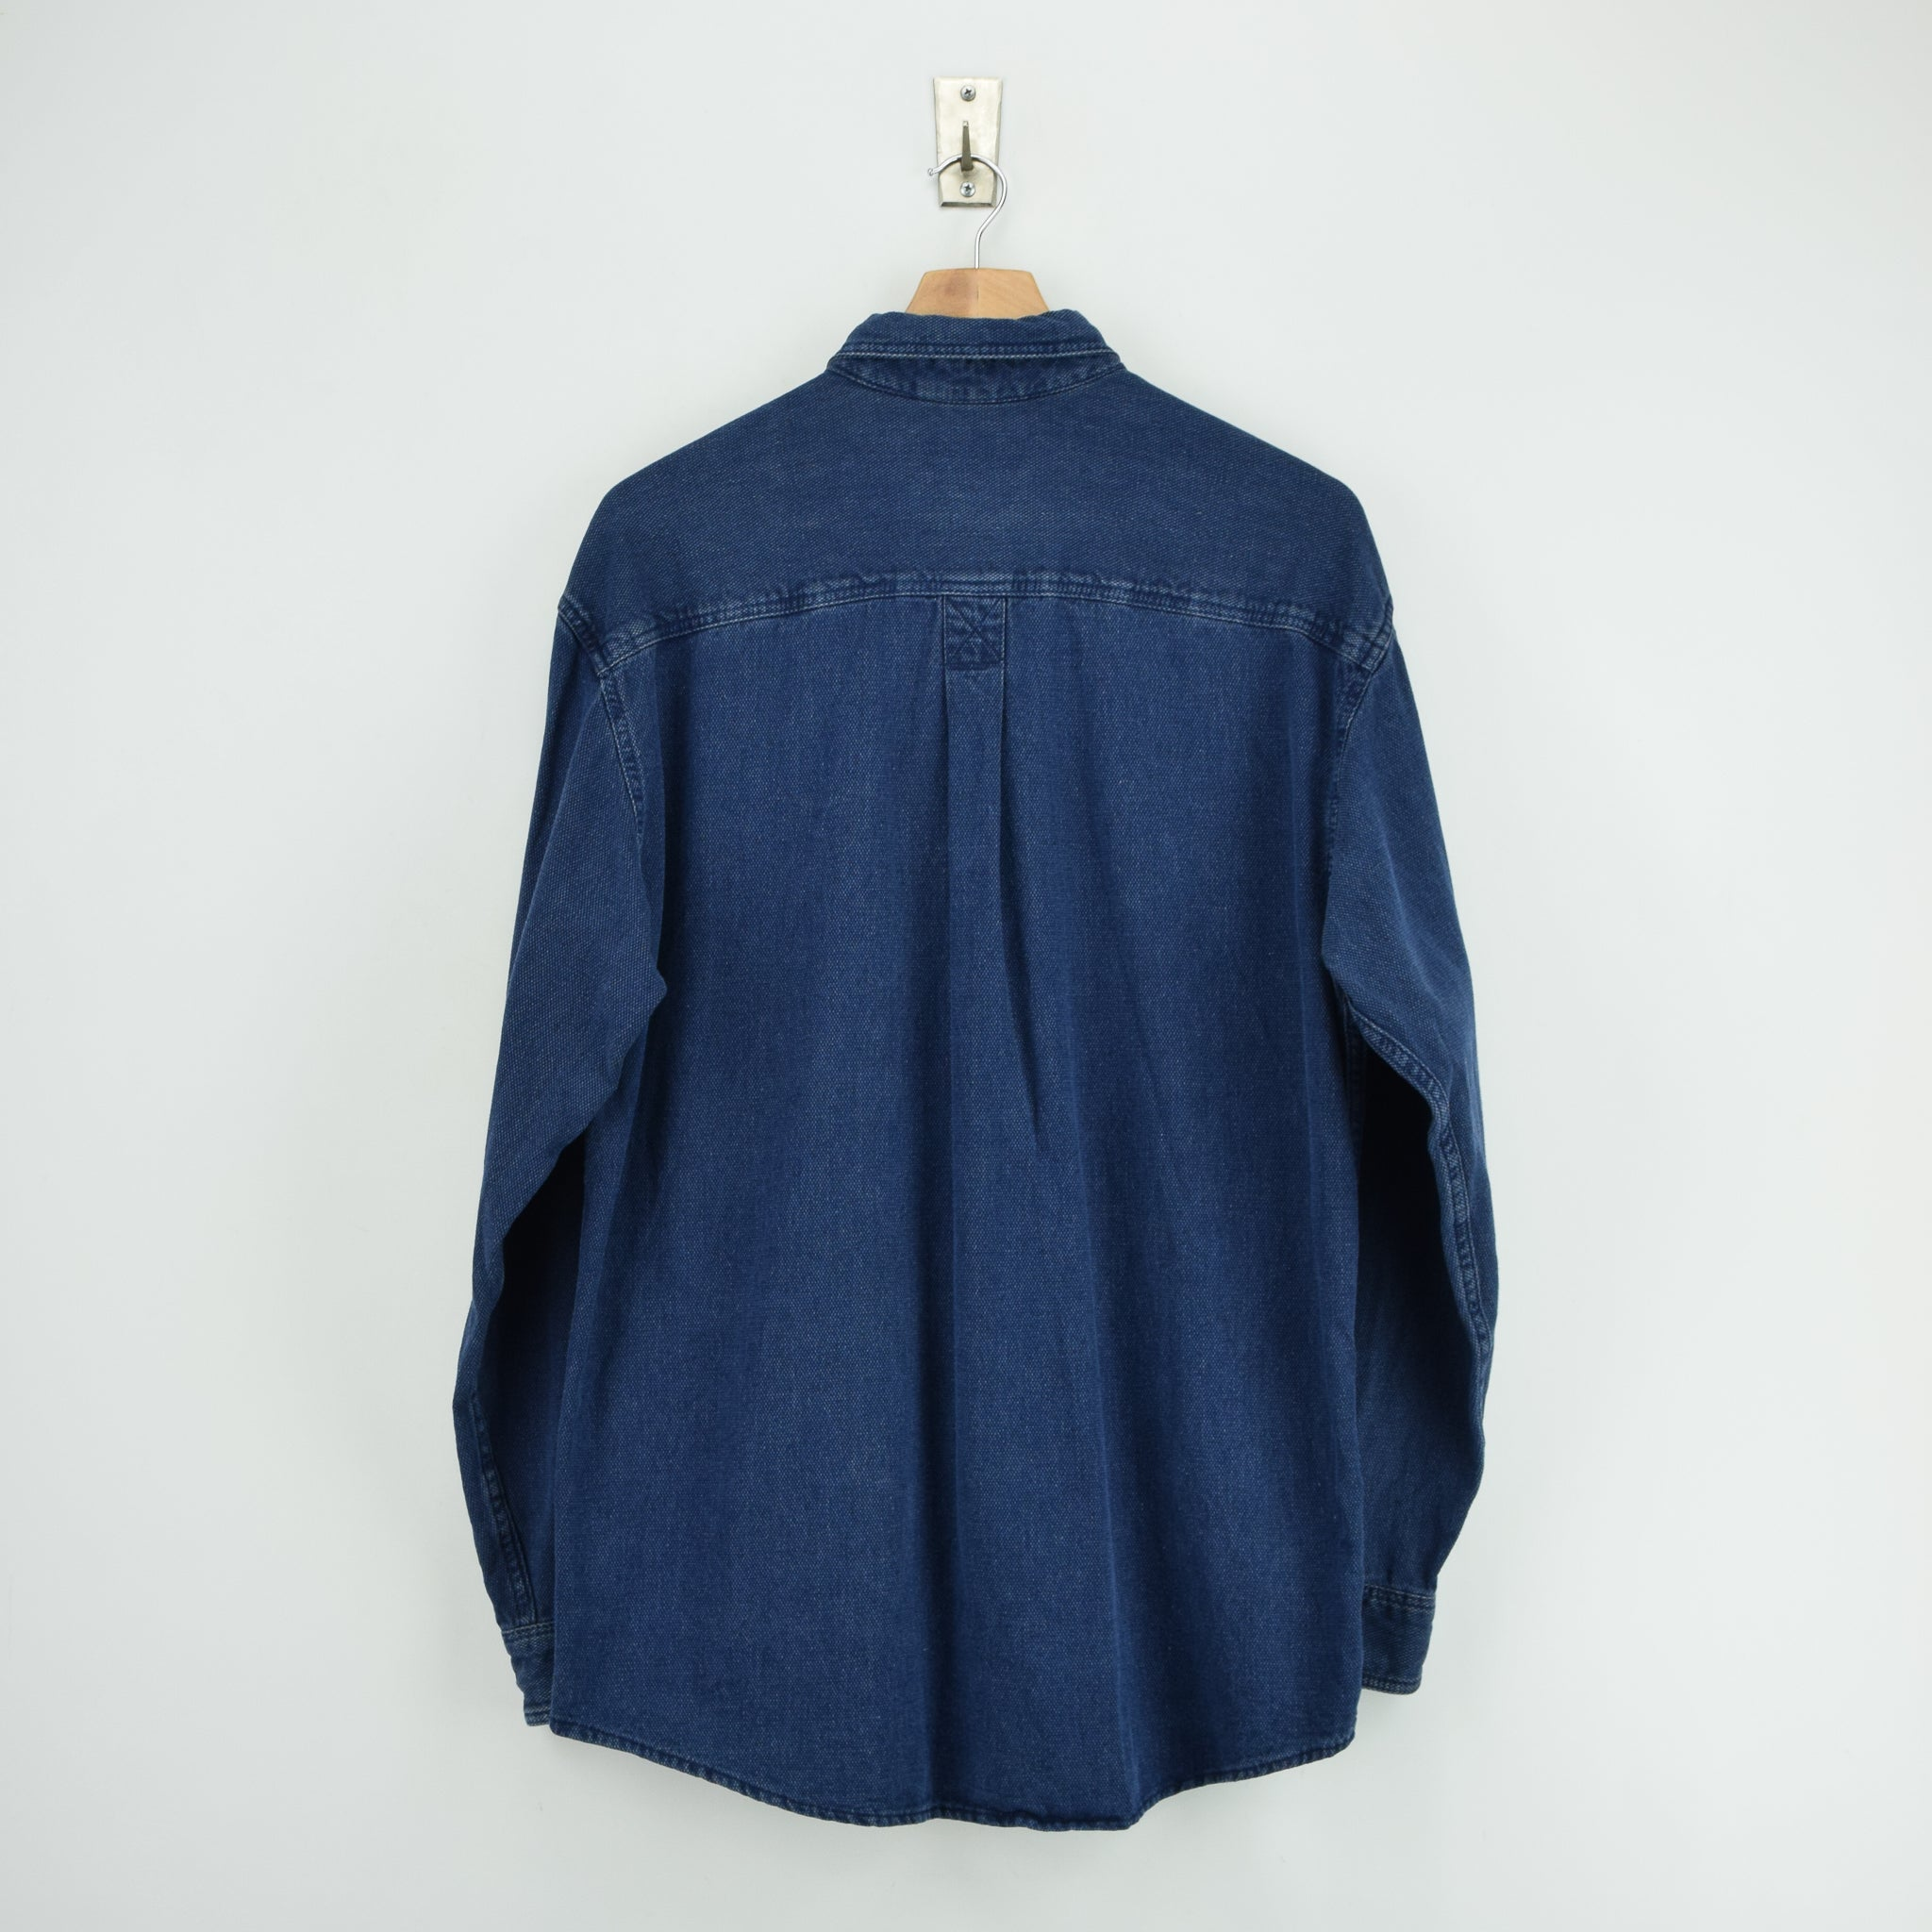 Vintage LL Bean AY45 Indigo Blue Cotton Shirt Long Sleeve Made in USA M Reg back